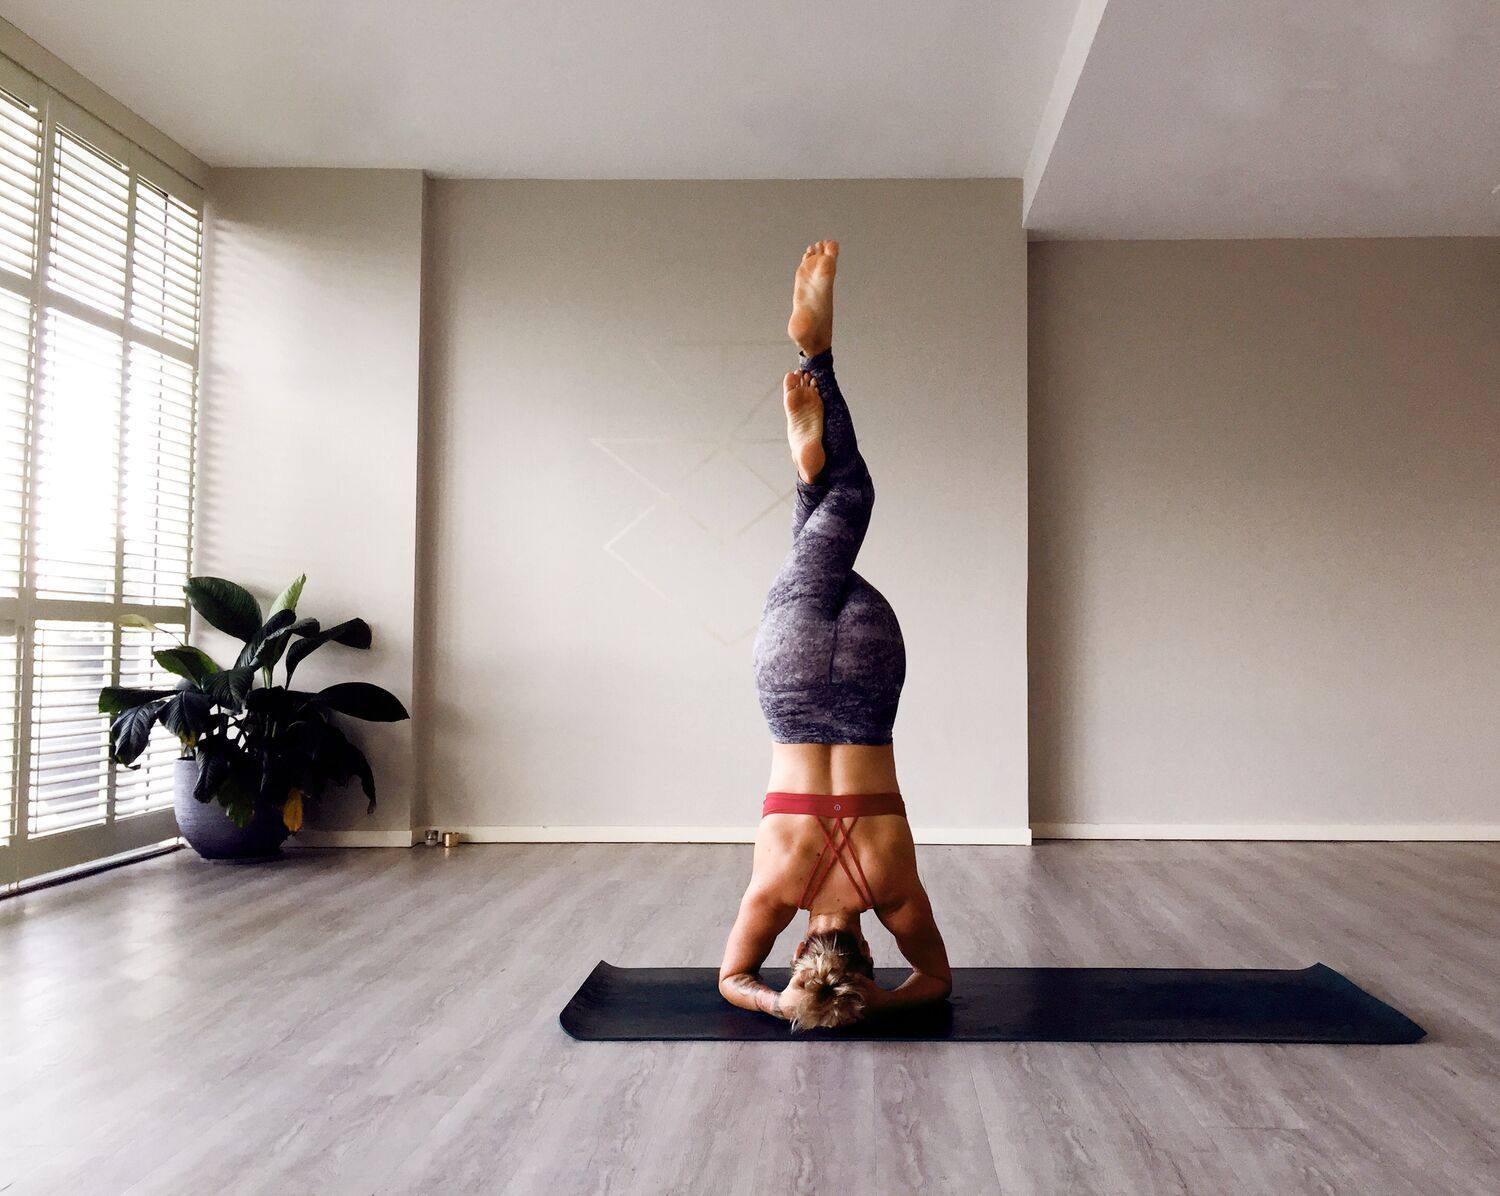 2020 Average Private Yoga Lessons Cost With Price Factors